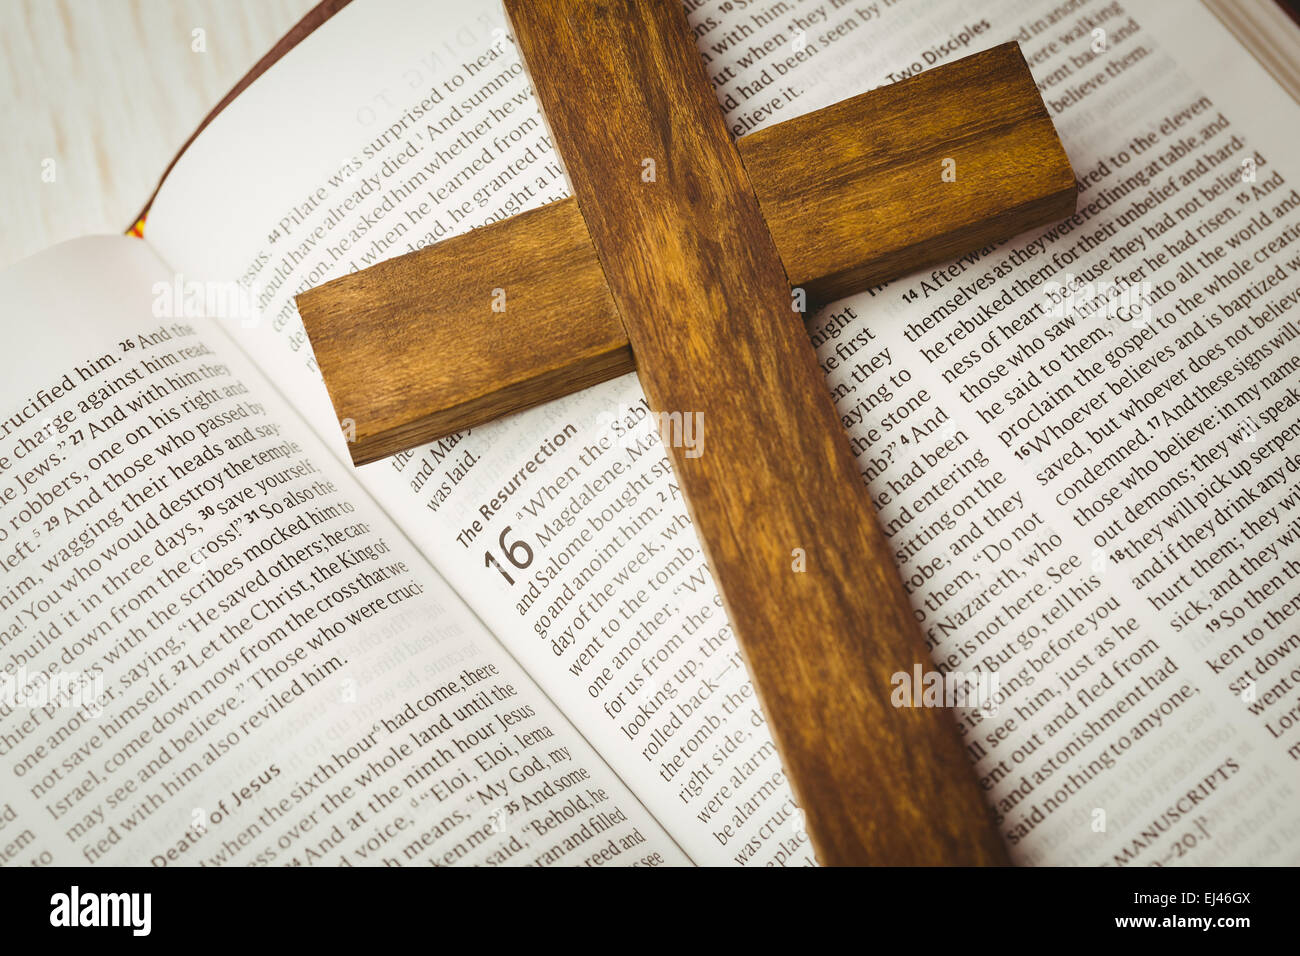 open bible and wooden